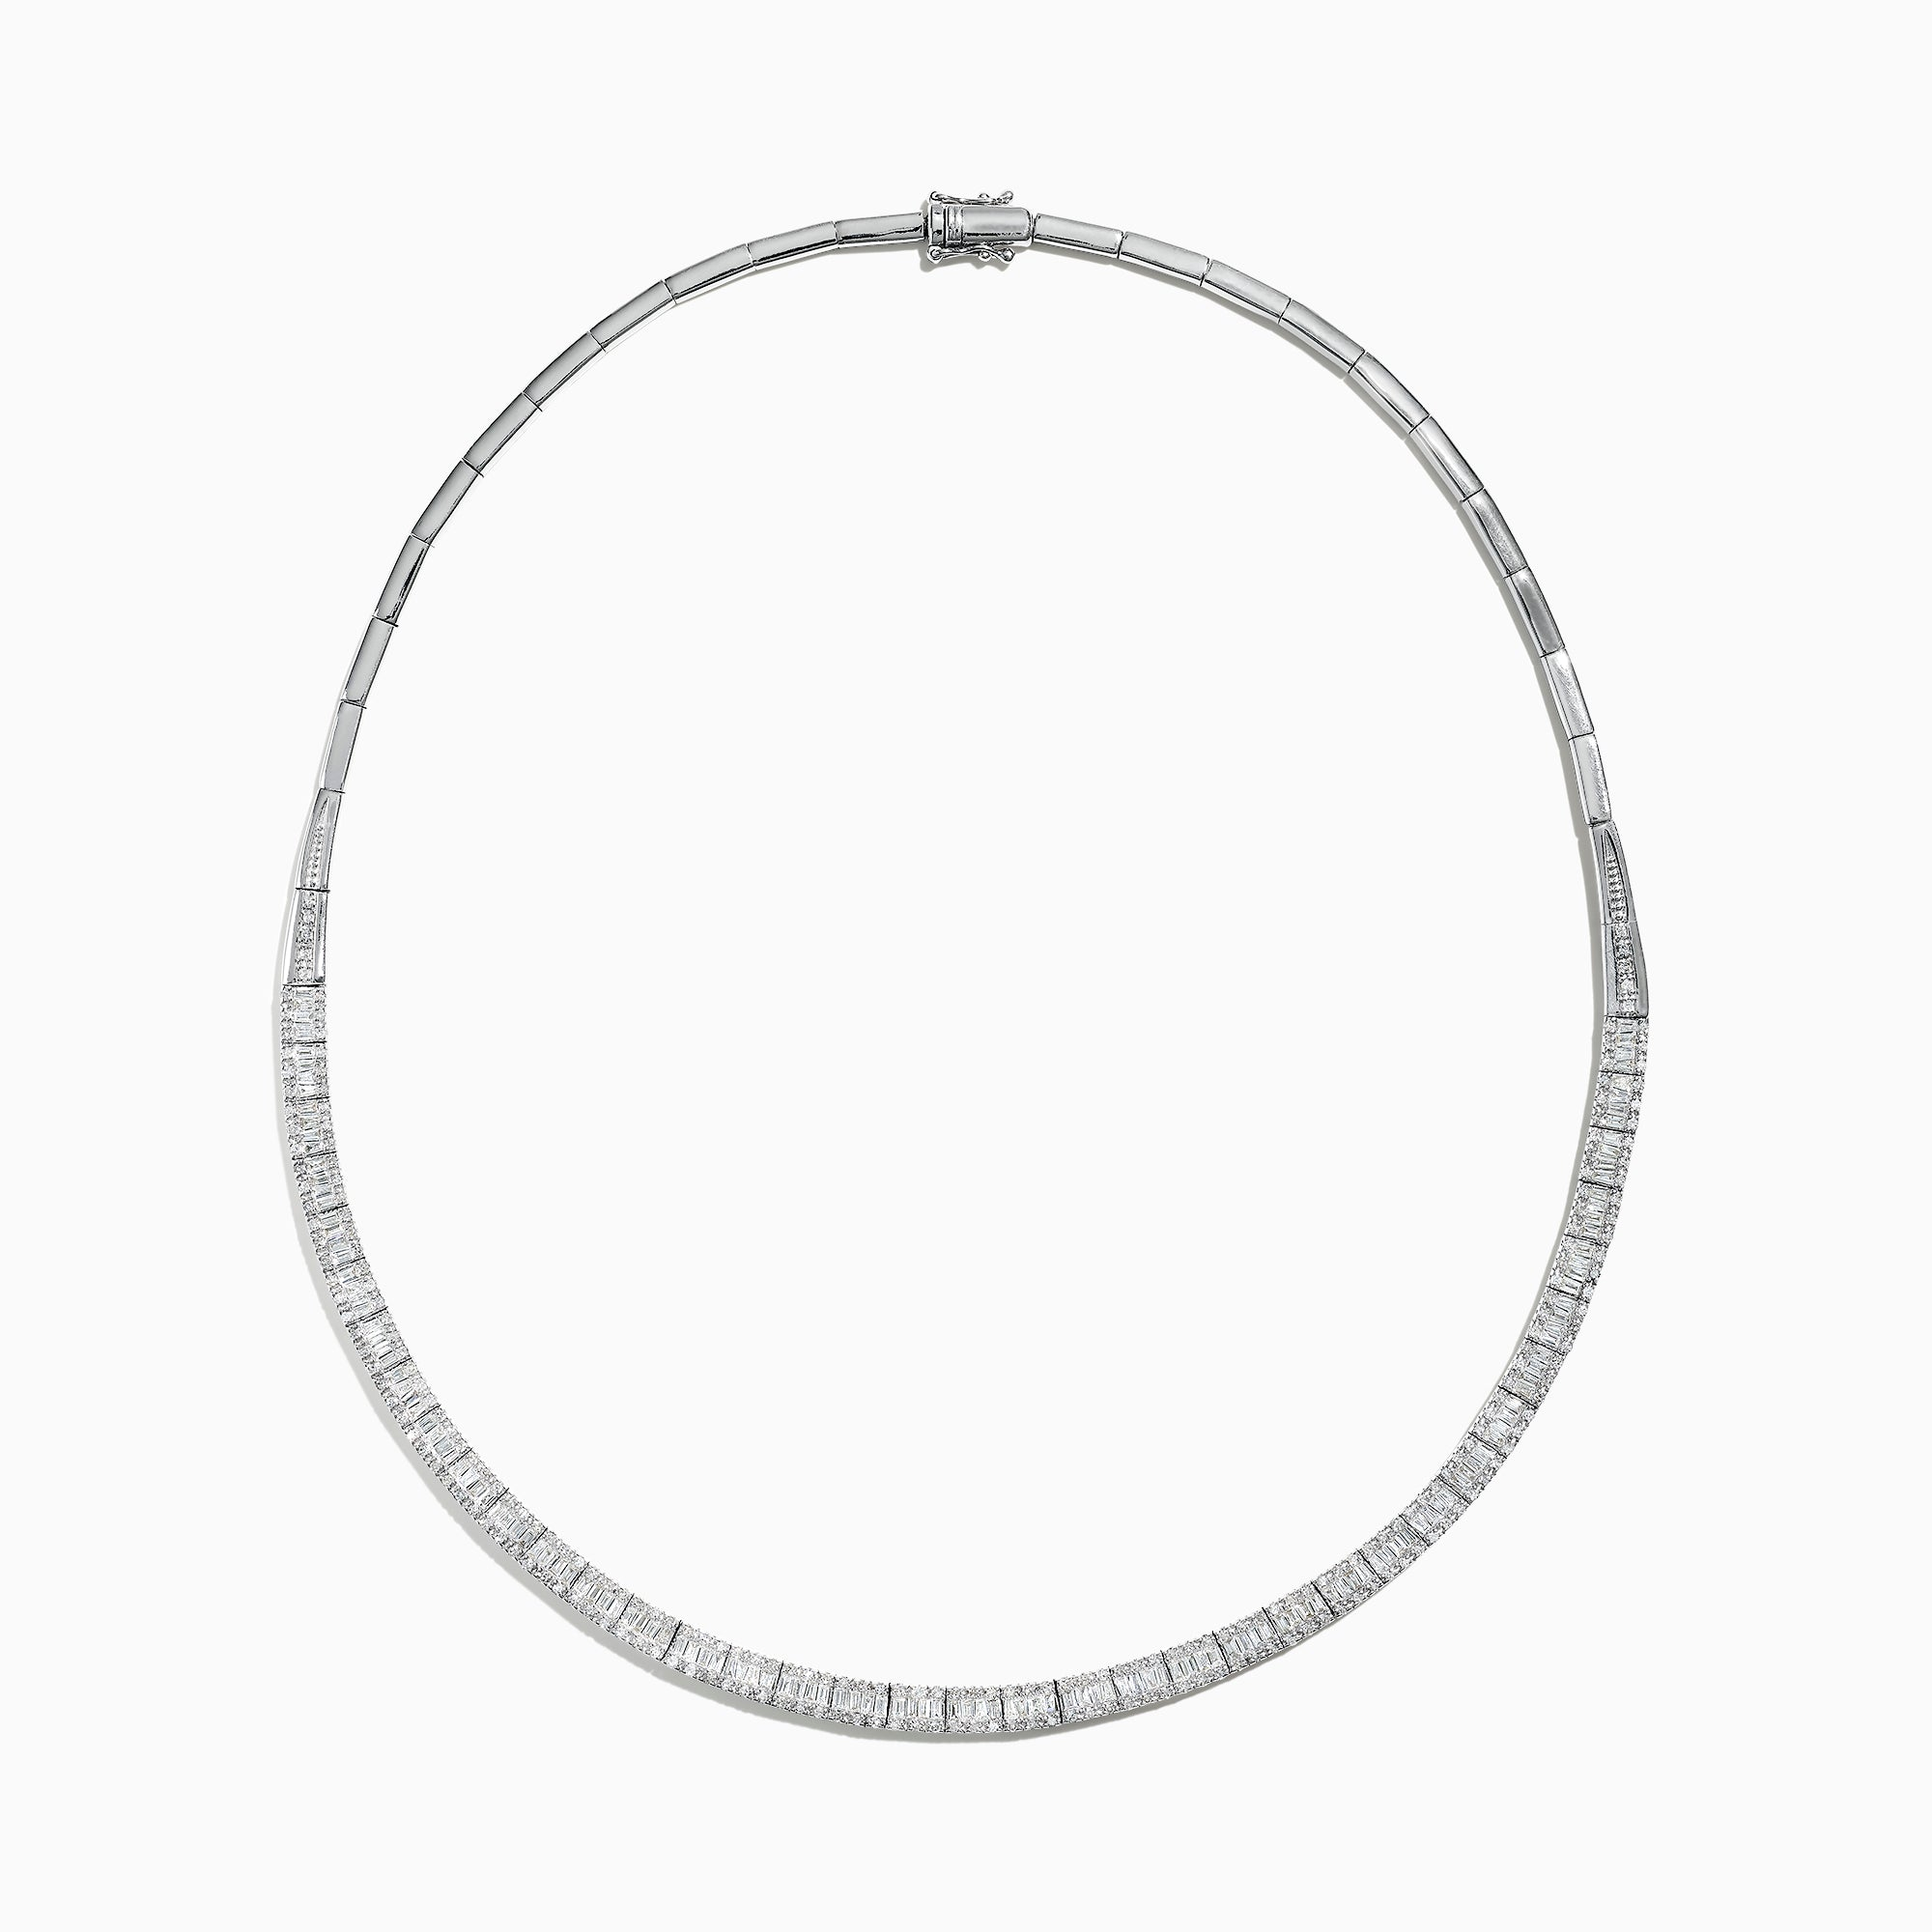 Effy Classique 14K White Gold Diamond Necklace, 4.16 TCW